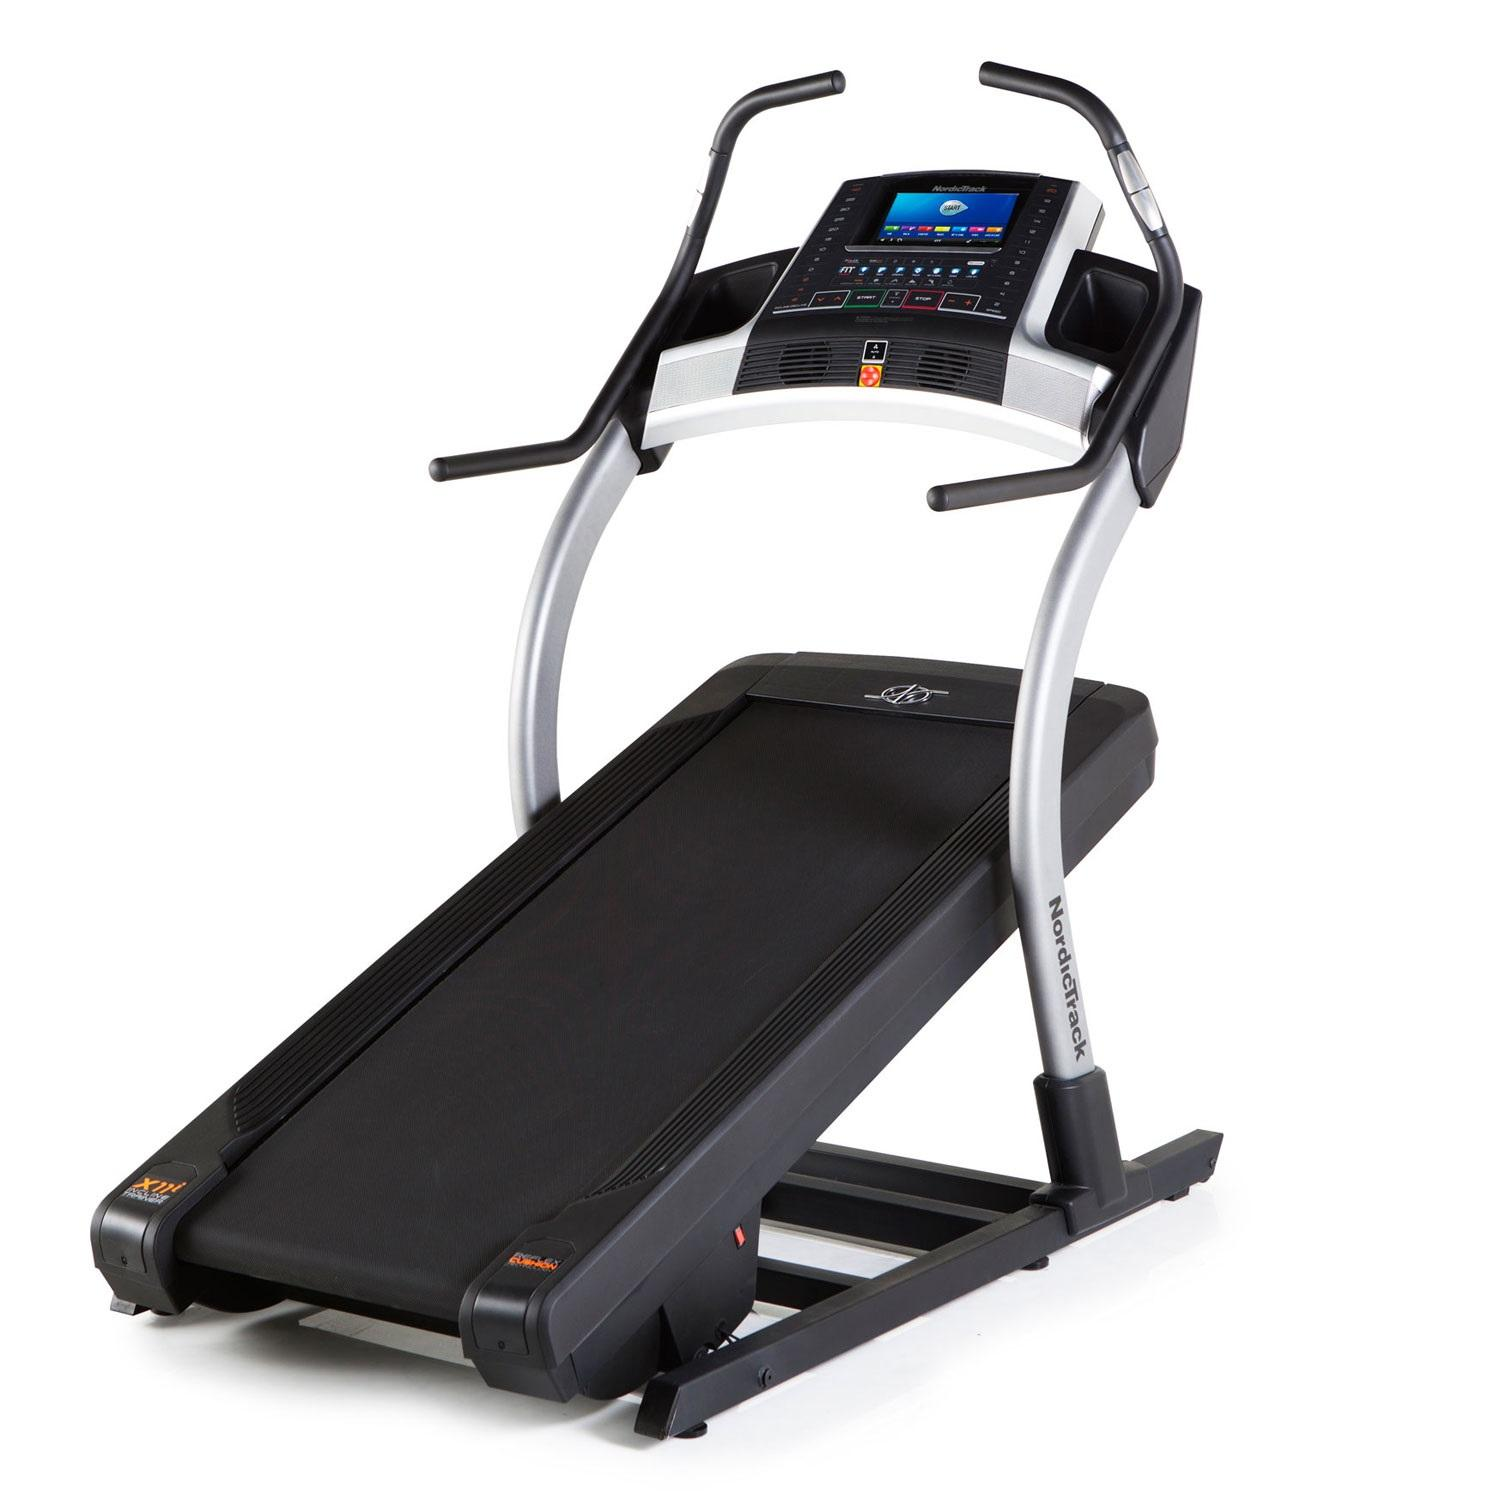 Беговая дорожка NordicTrack Incline Trainer X9i (NETL29714), фото №1